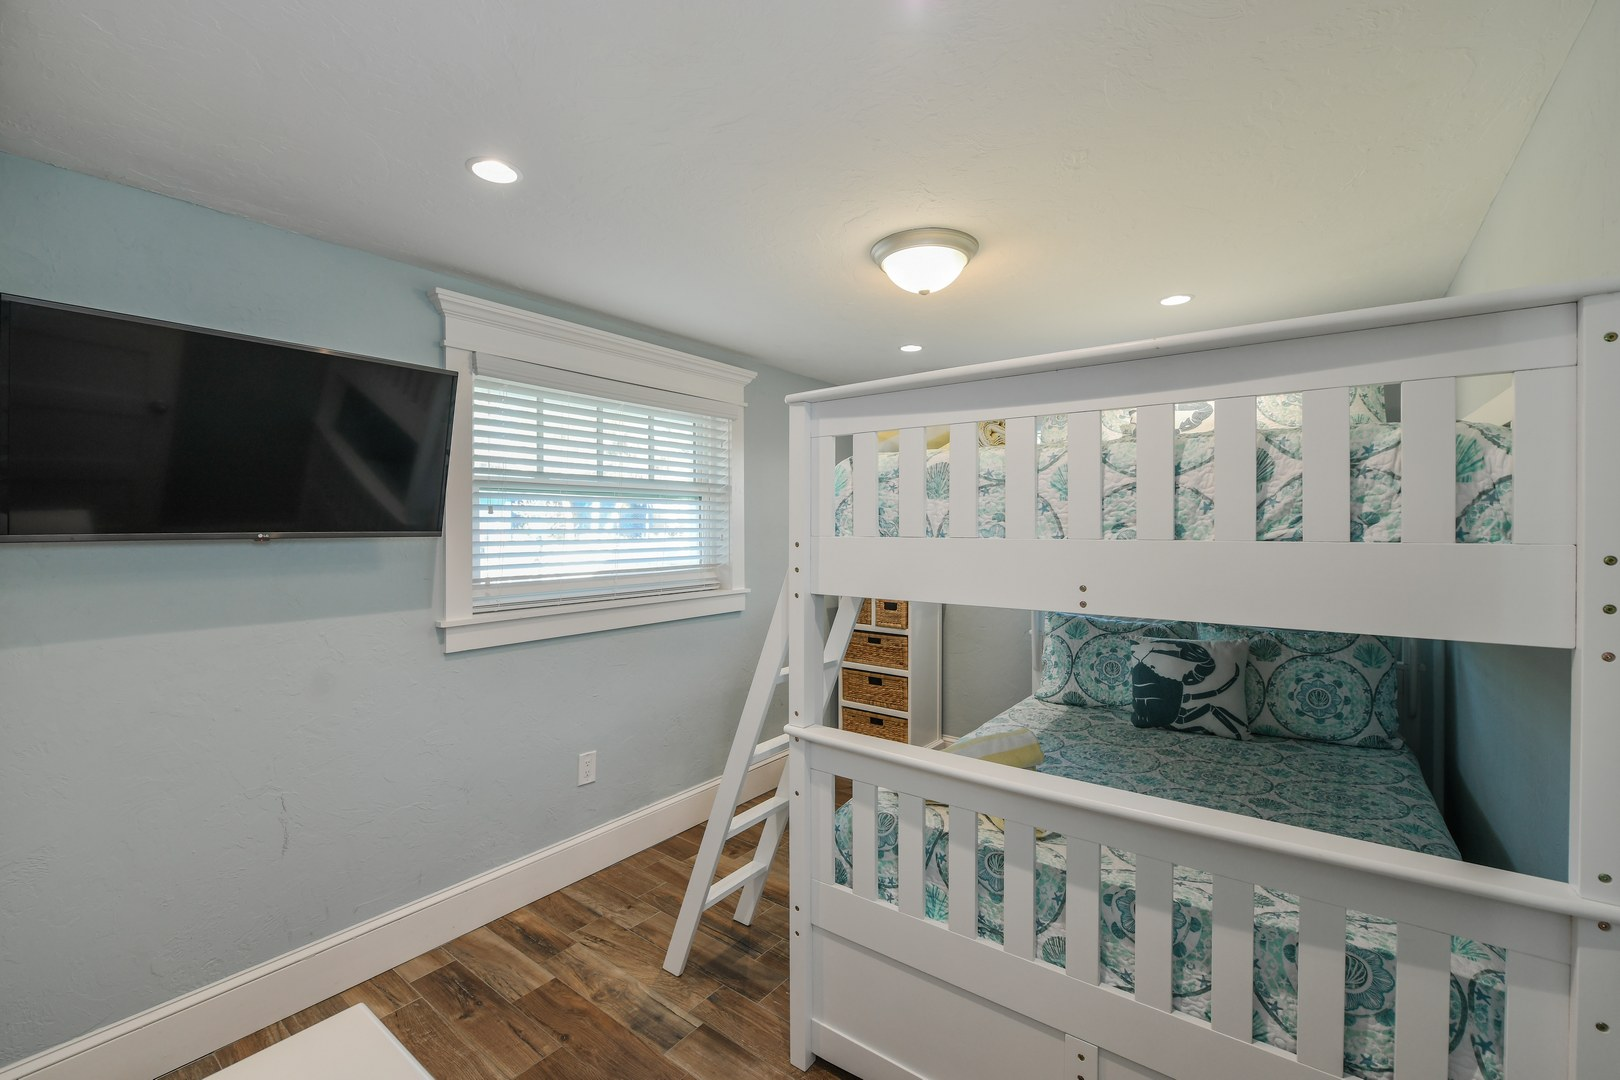 Example bunk bed room 2